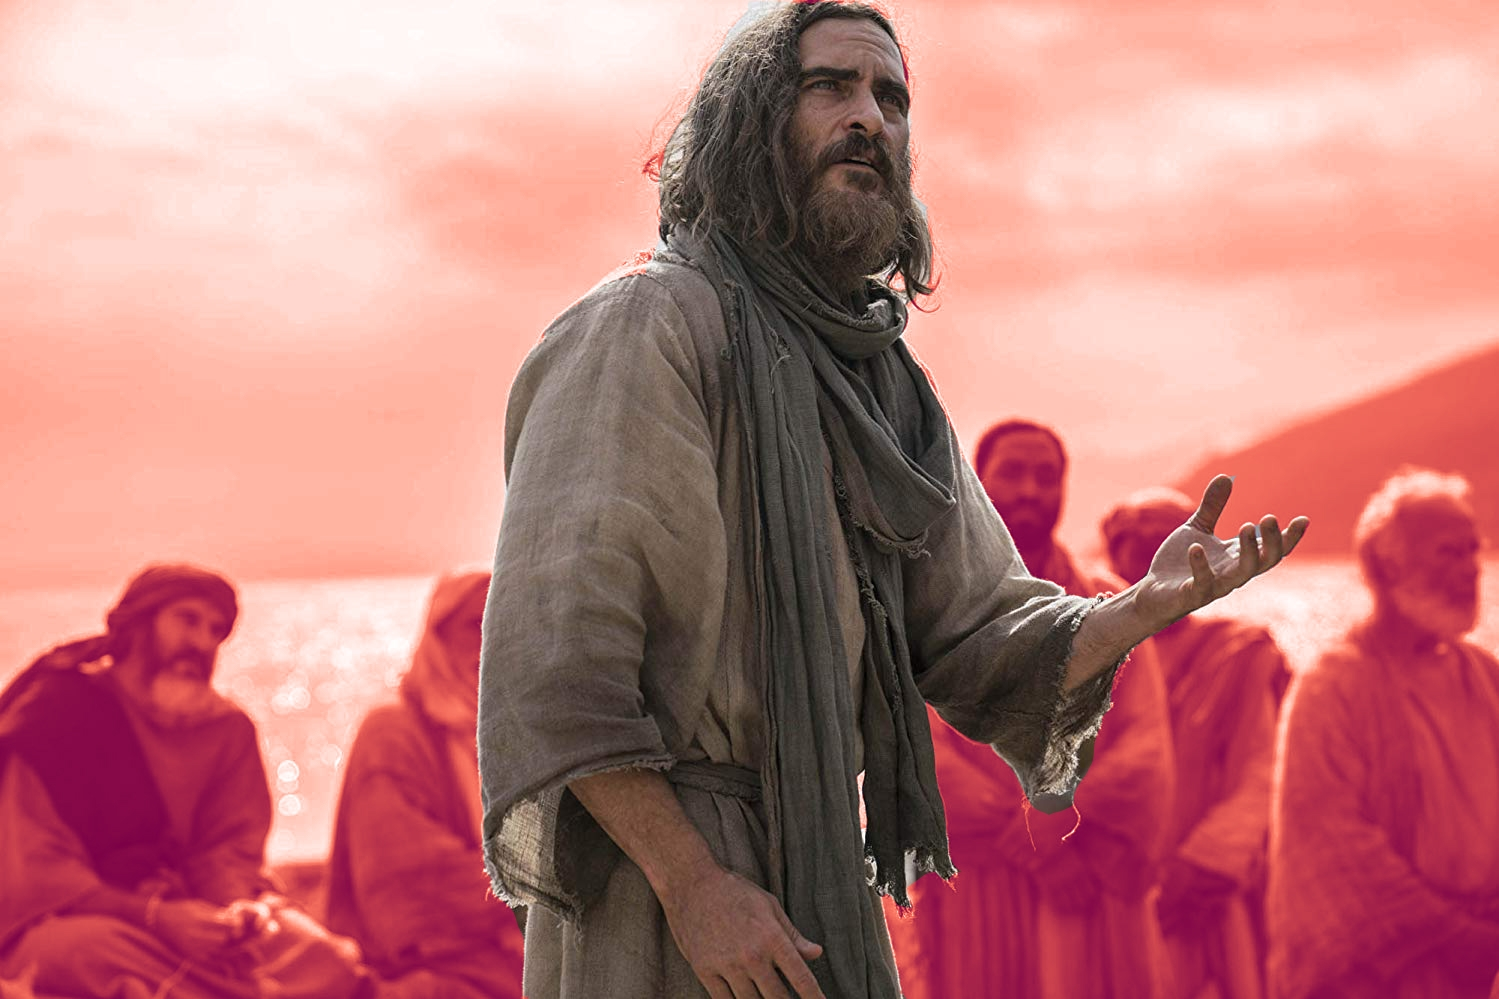 There Are So Many Jews in the New Jesus Movie 'Mary Magdalene'